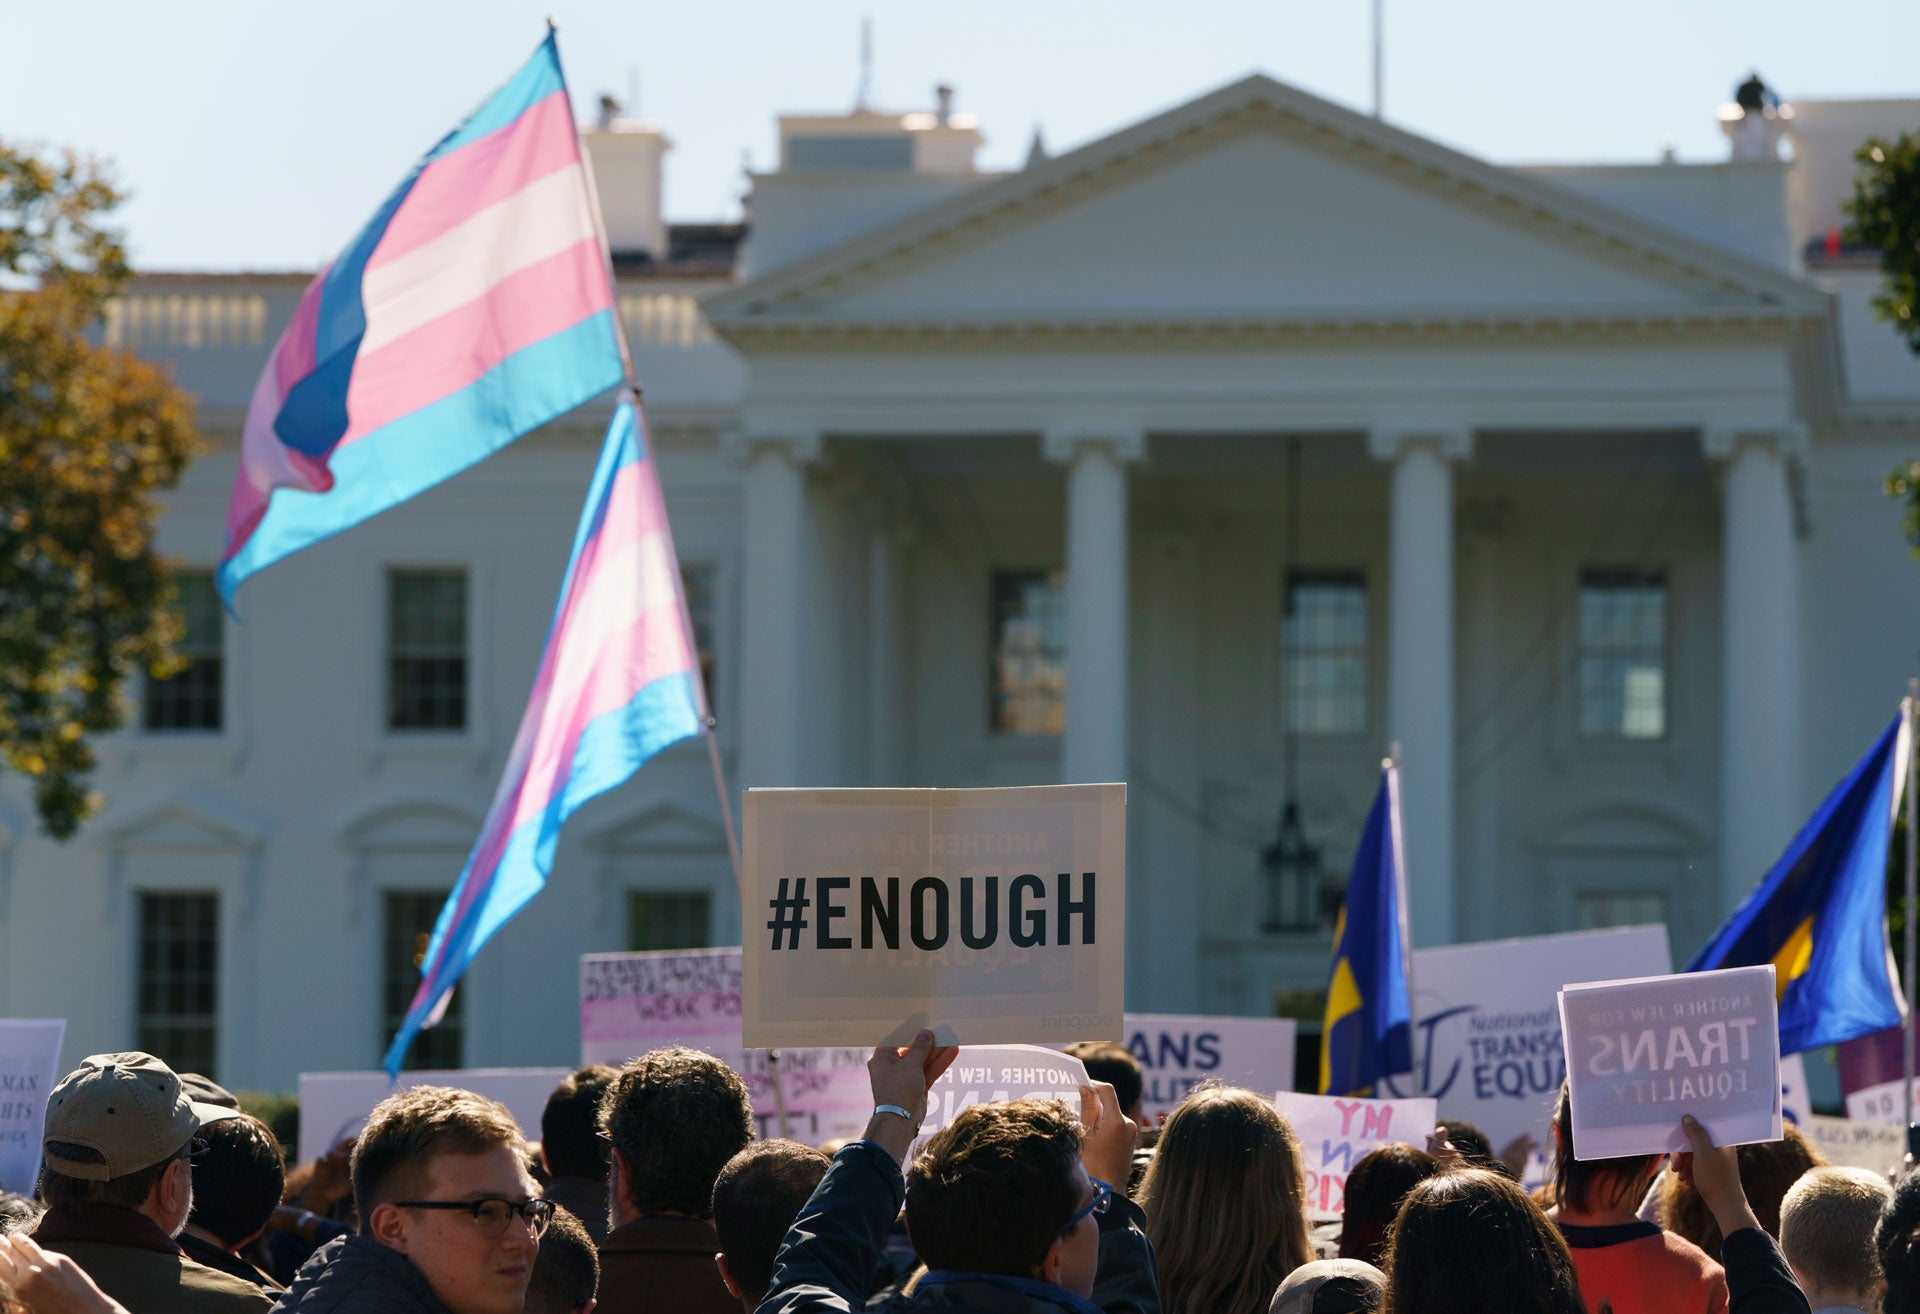 www.hrw.org: The United States Still Needs the Equality Act